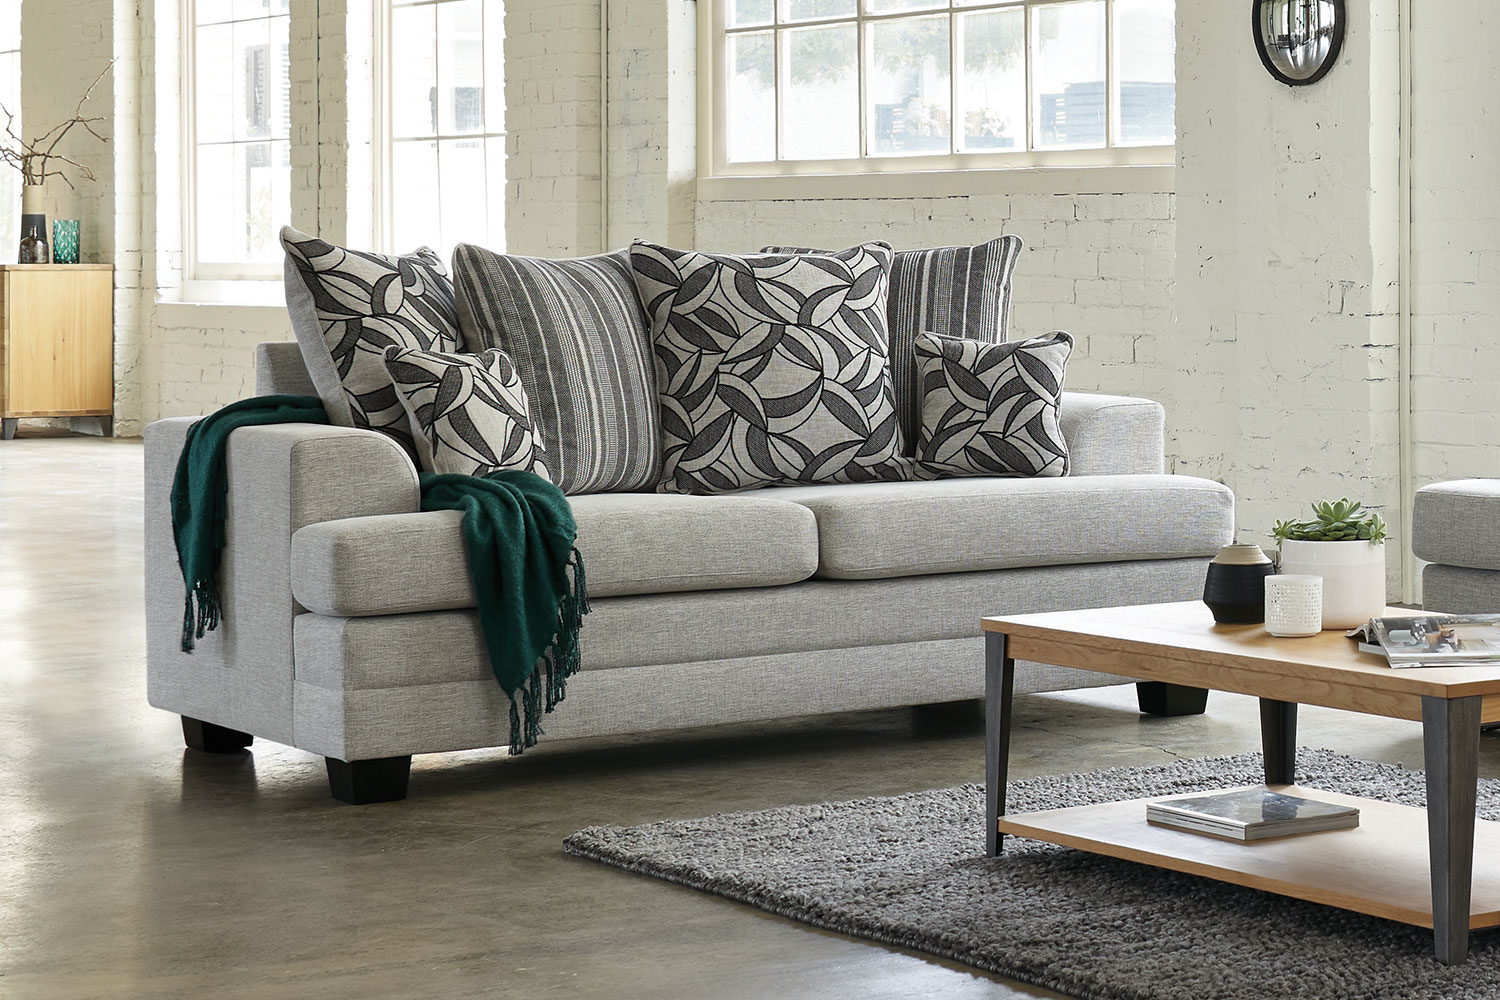 rolled arm sofa nz italian leather sofas south africa evolution 2 piece fabric lounge suite by white rose